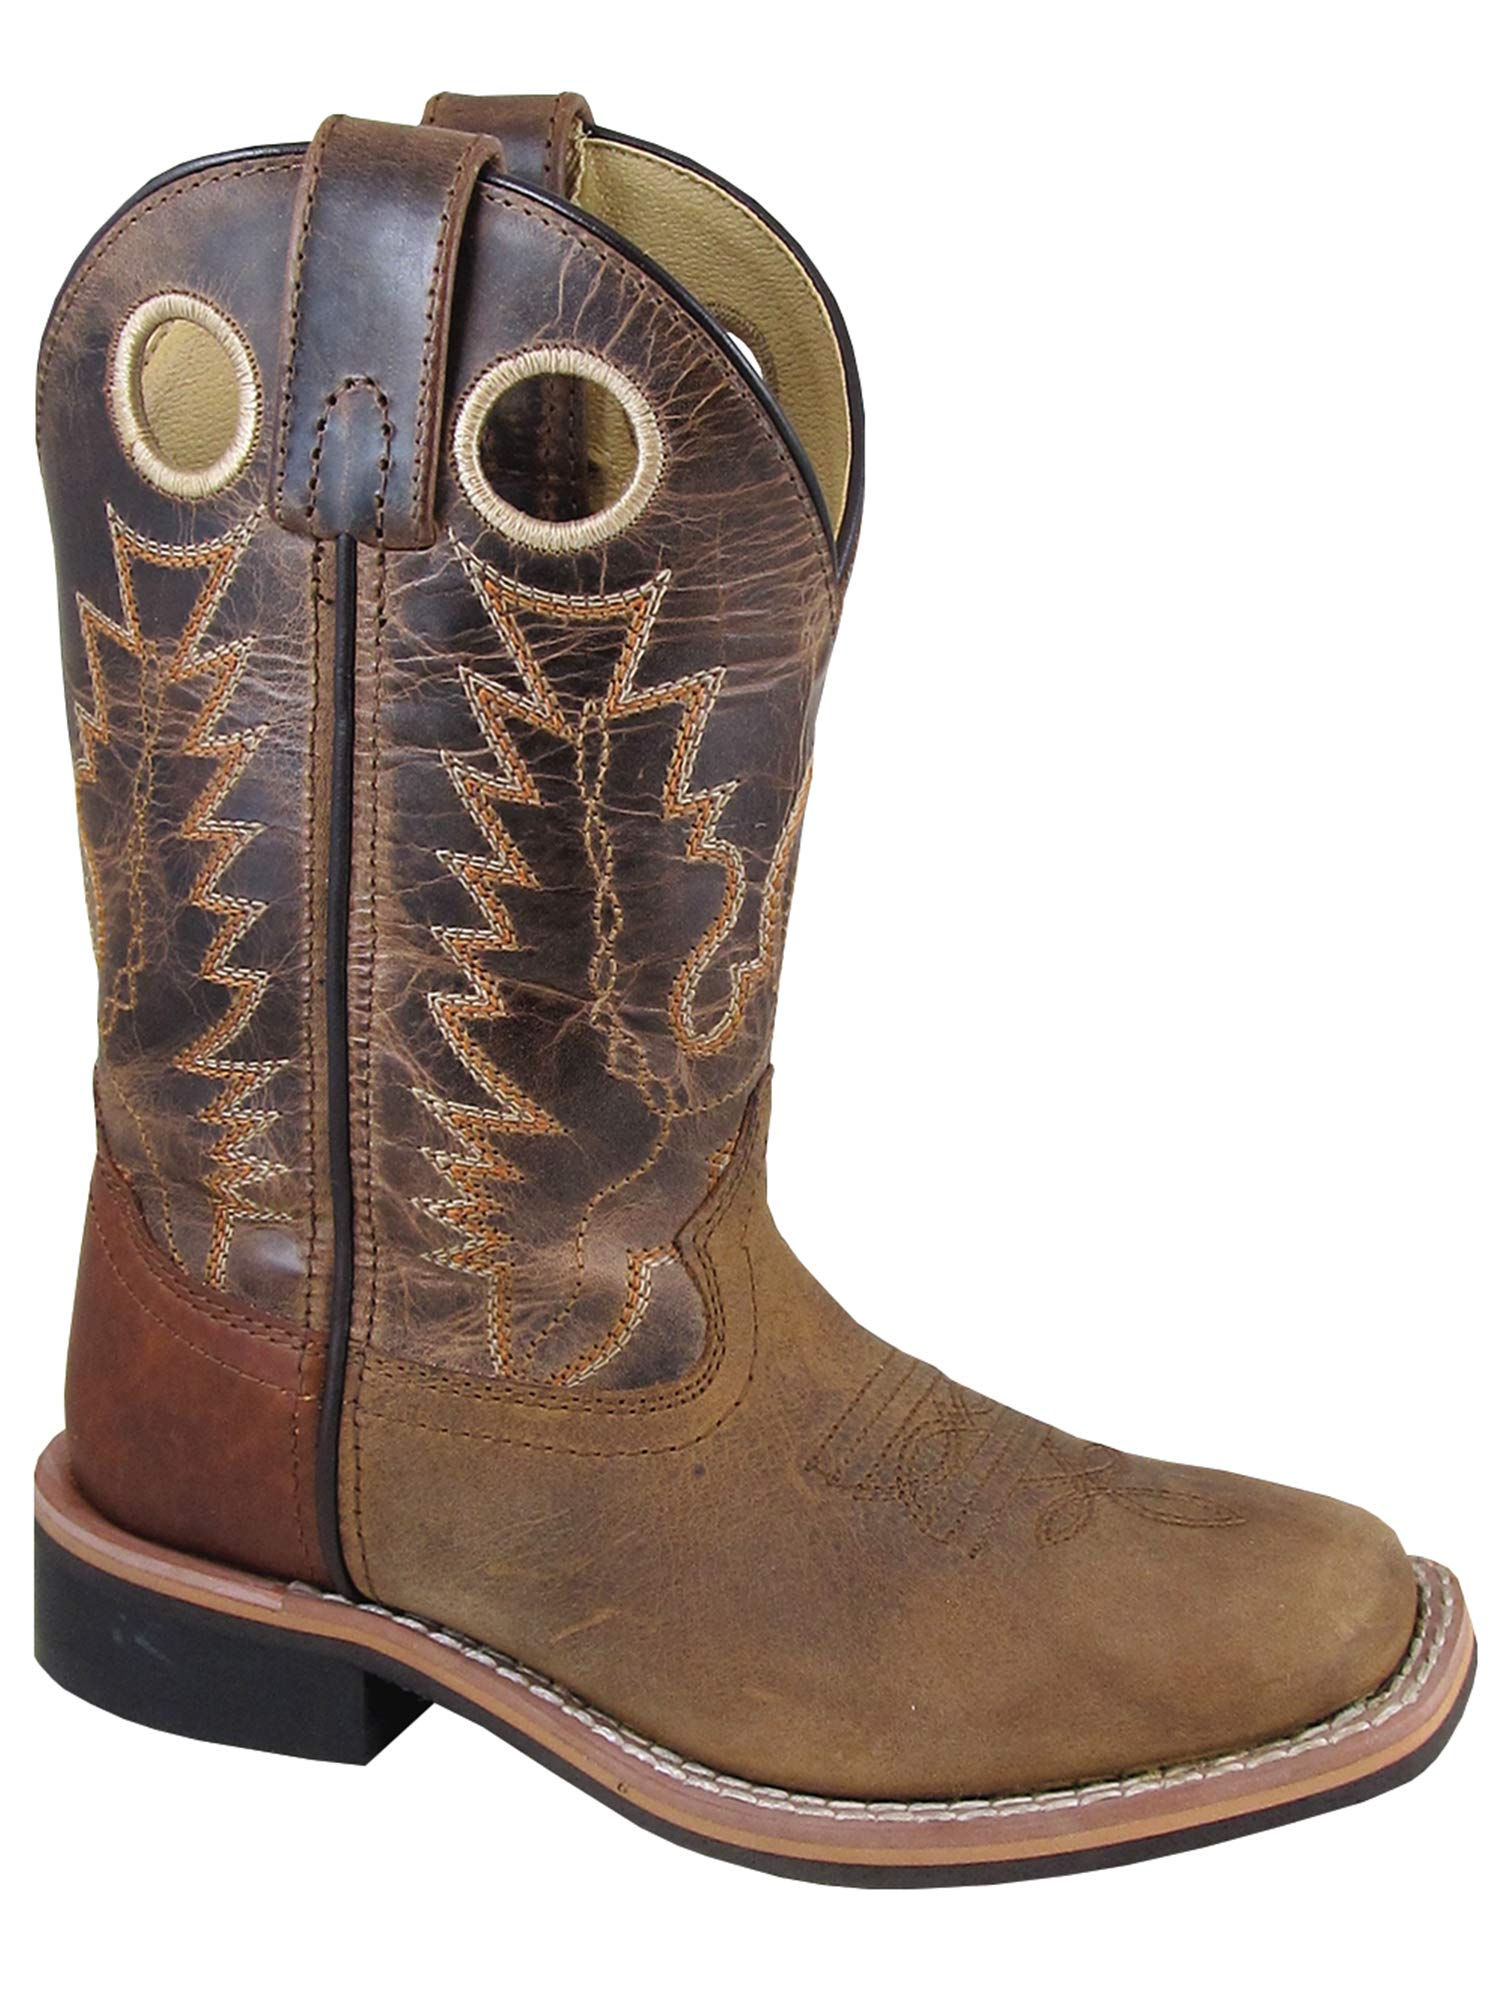 Smoky Jesse Children Cowboy Boot, Brown, 7M